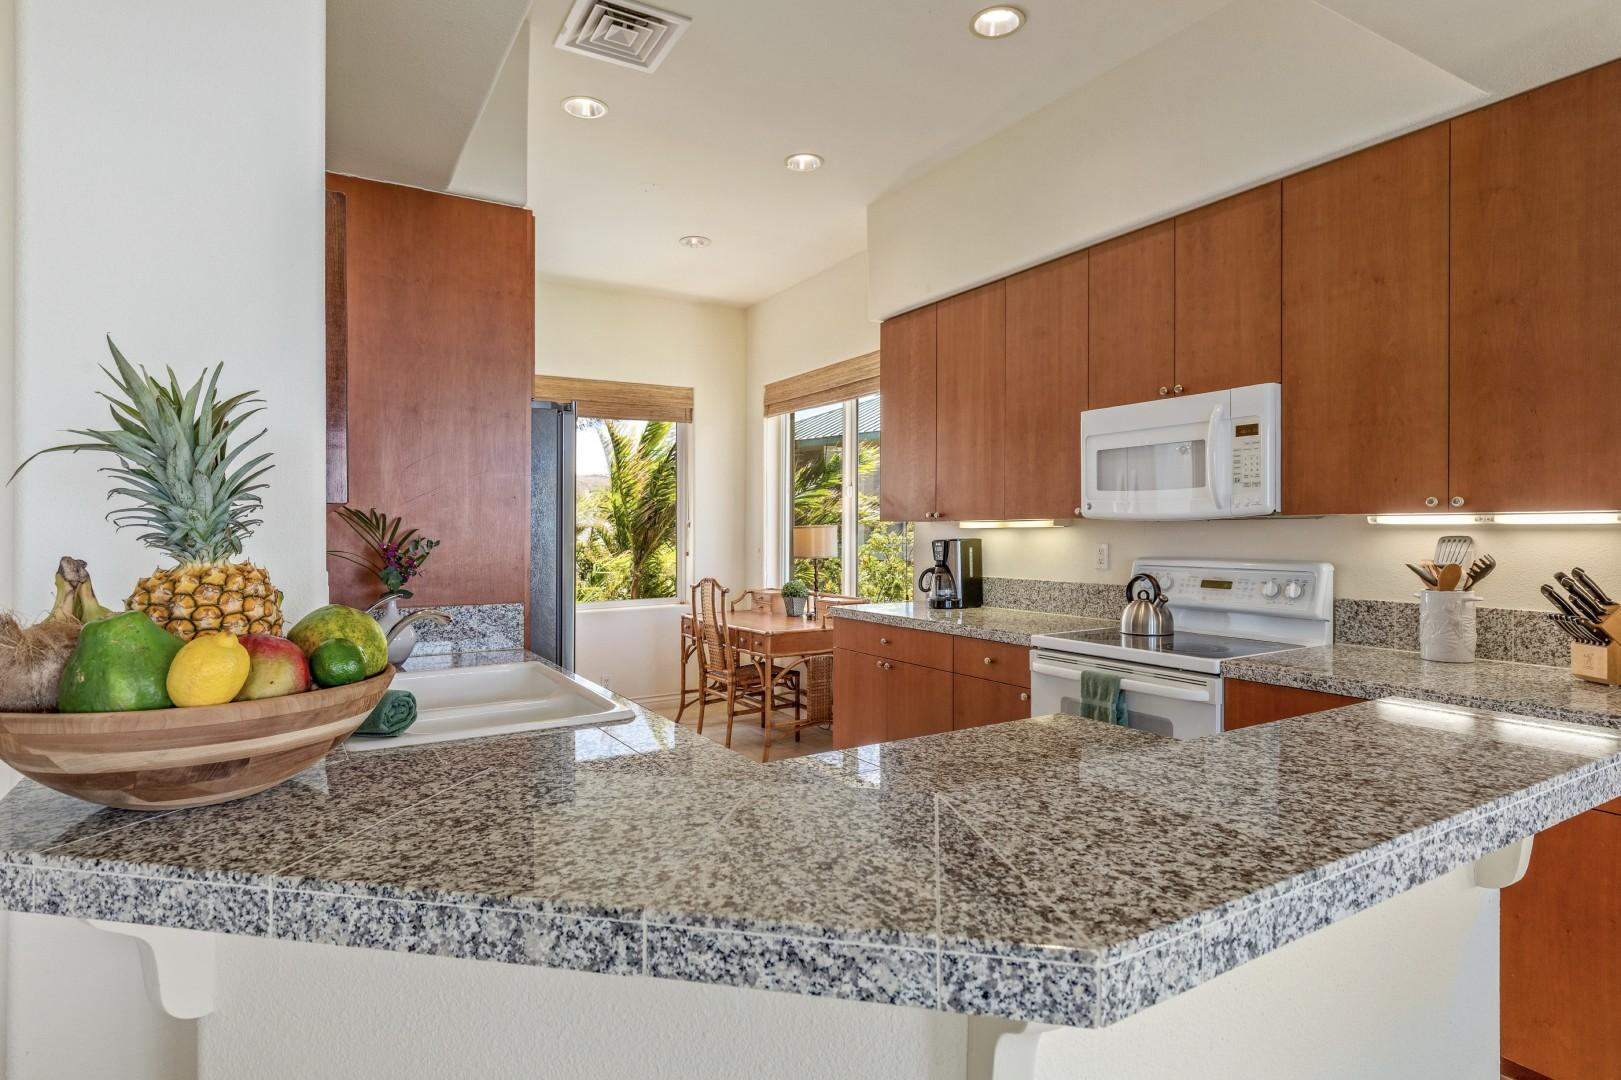 Gleaming granite countertops and modern appliances - a chef's delight!